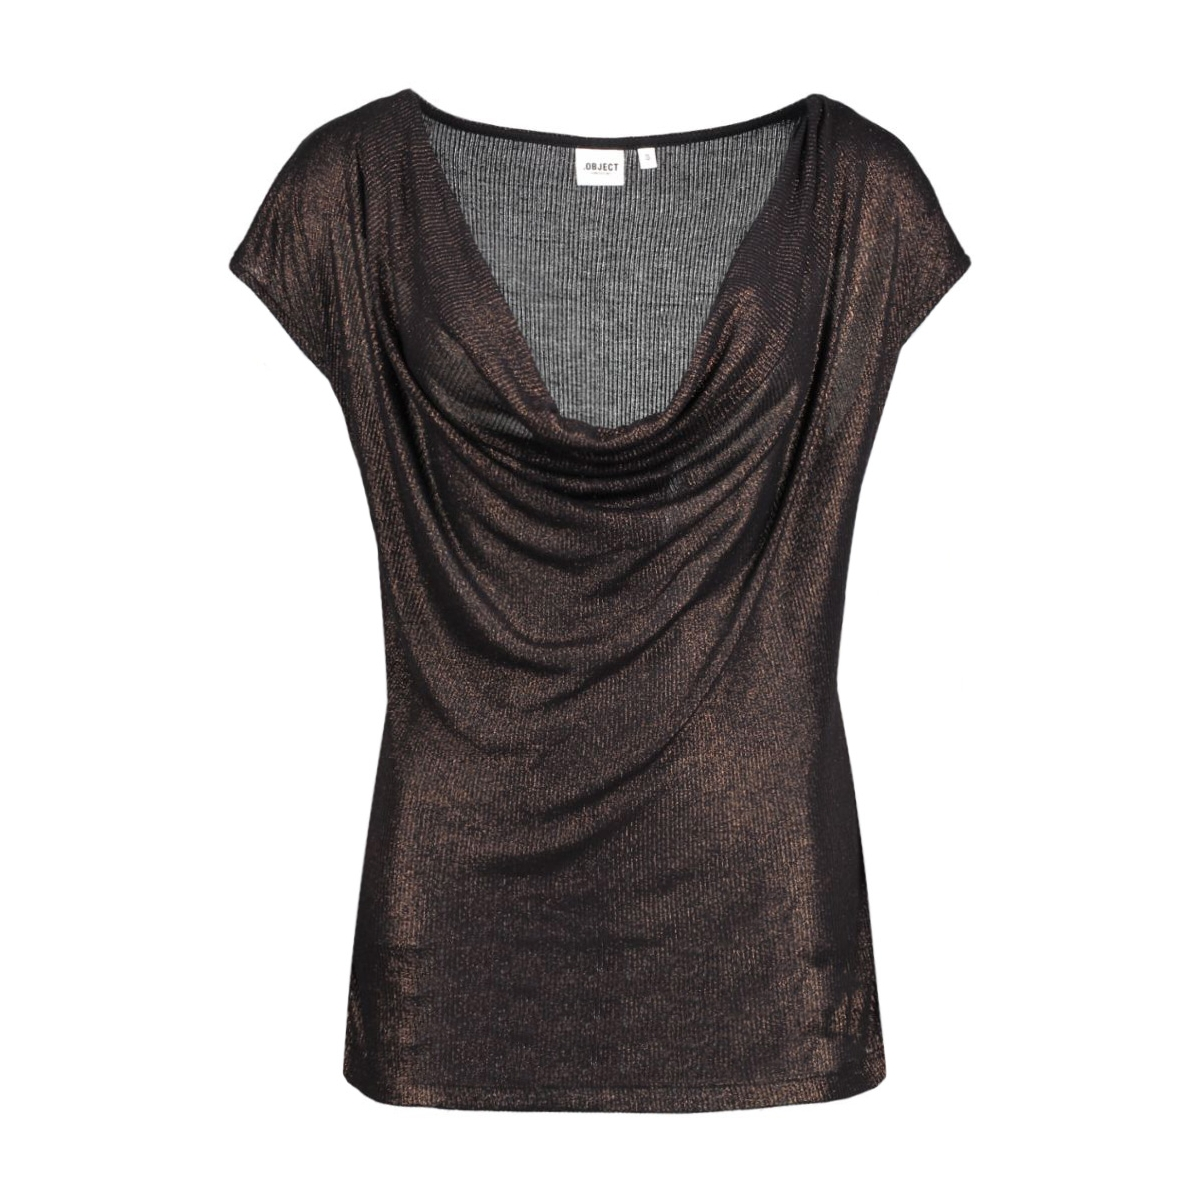 objvirgo s/s top 23023540 object t-shirt copper colour